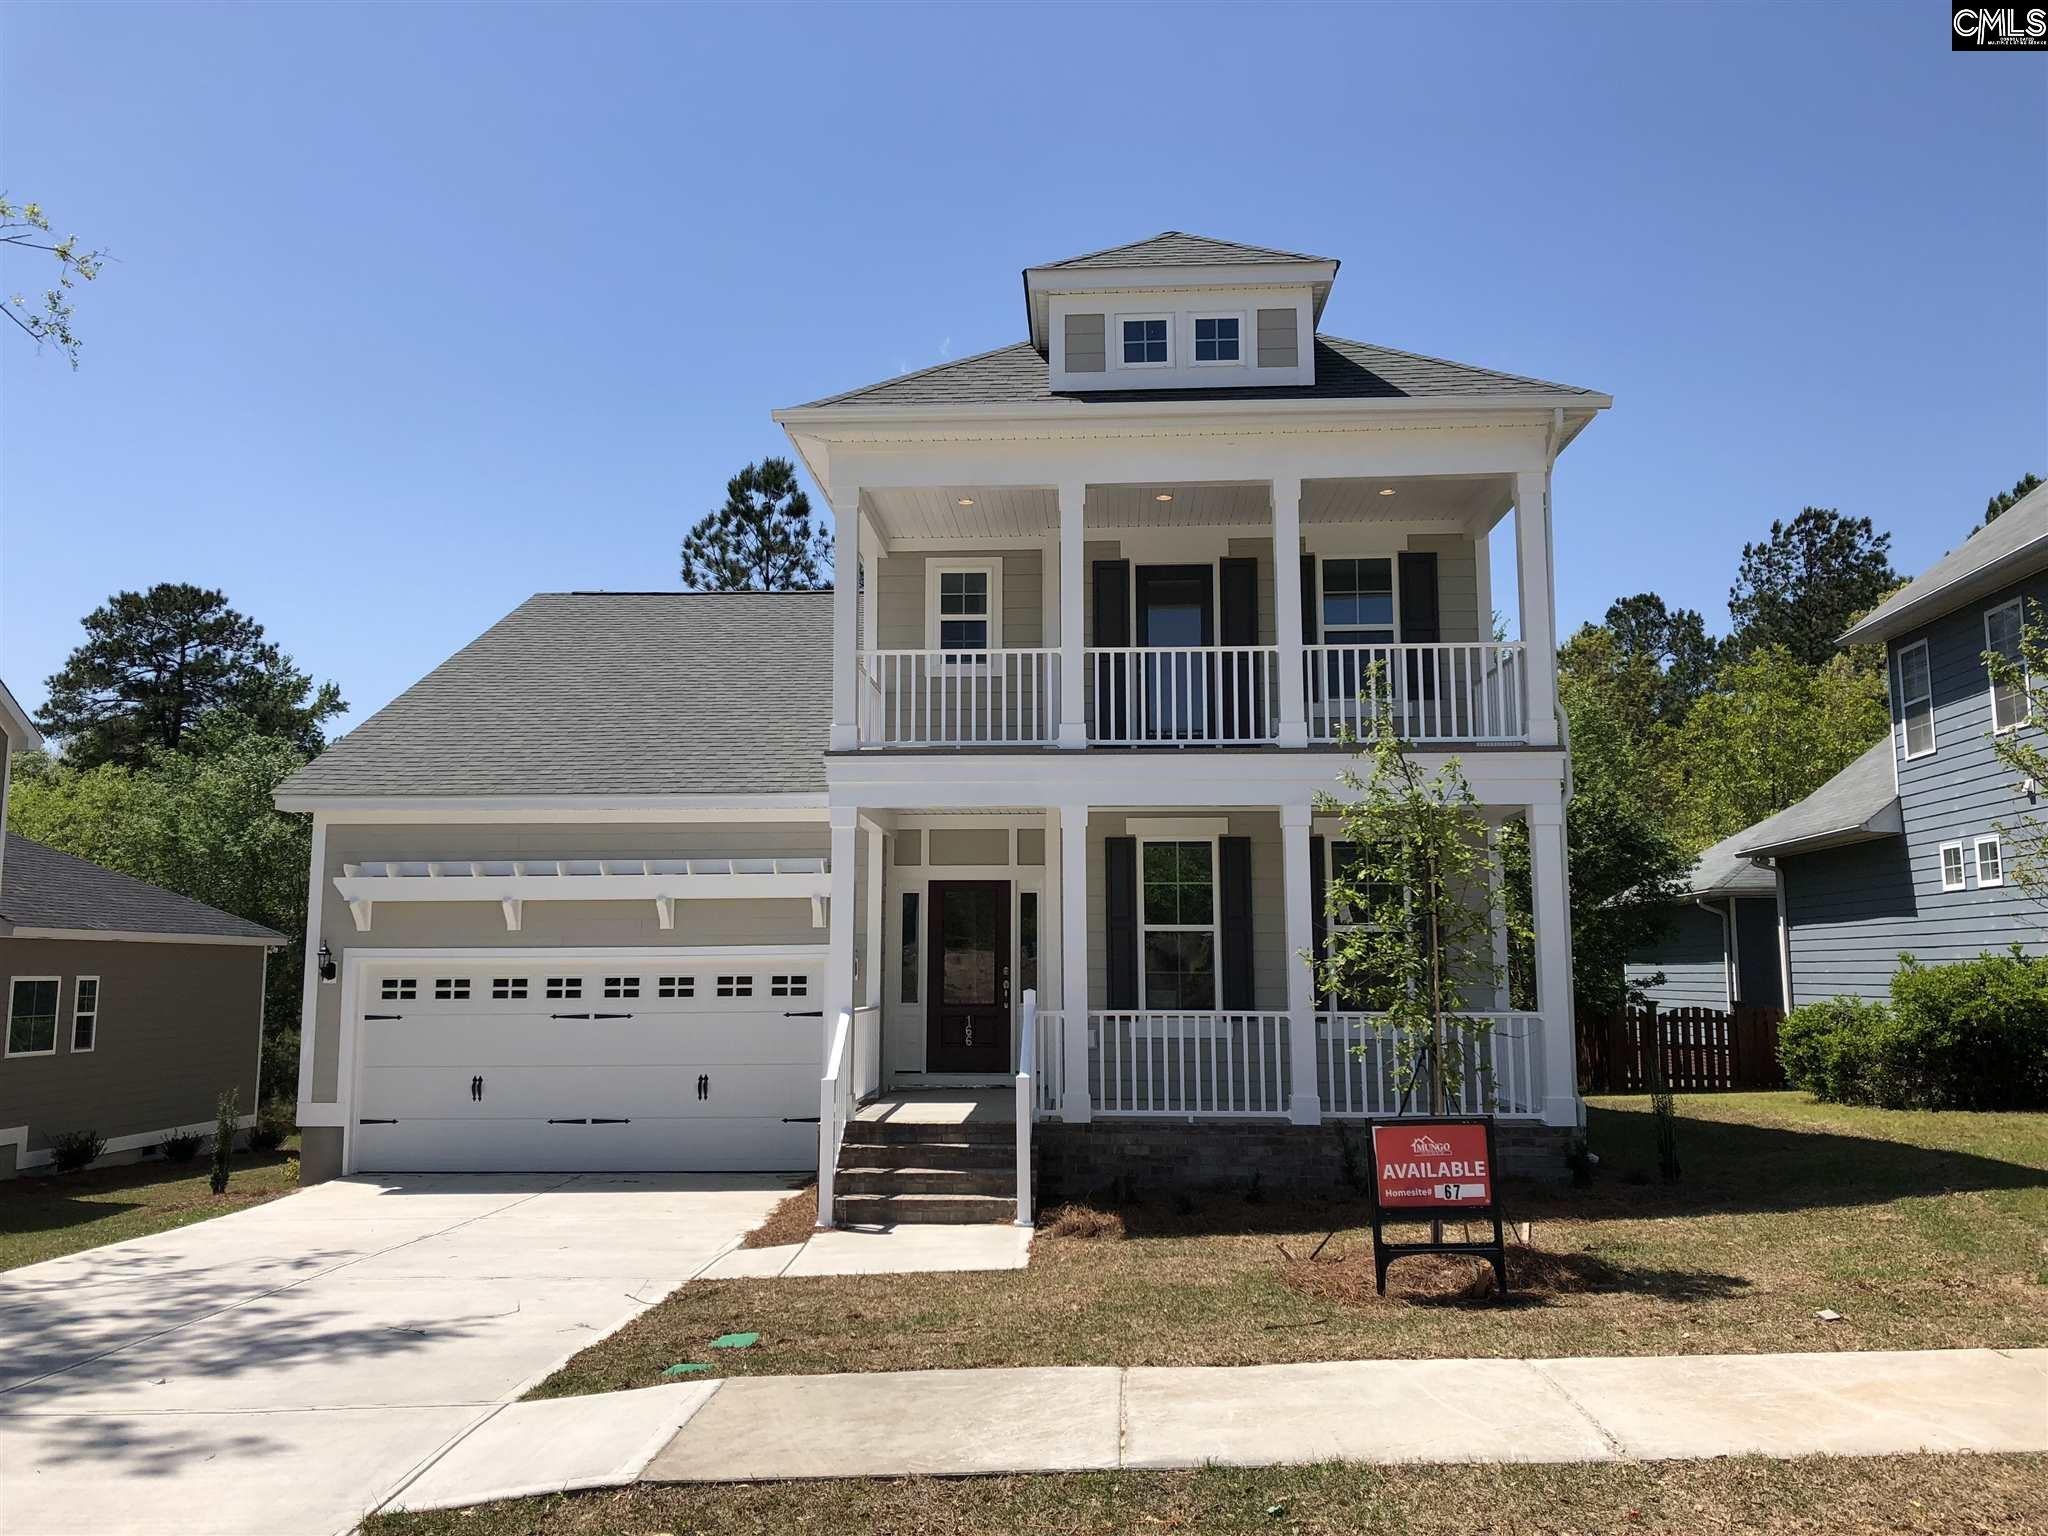 166 Baysdale #67 Columbia, SC 29229